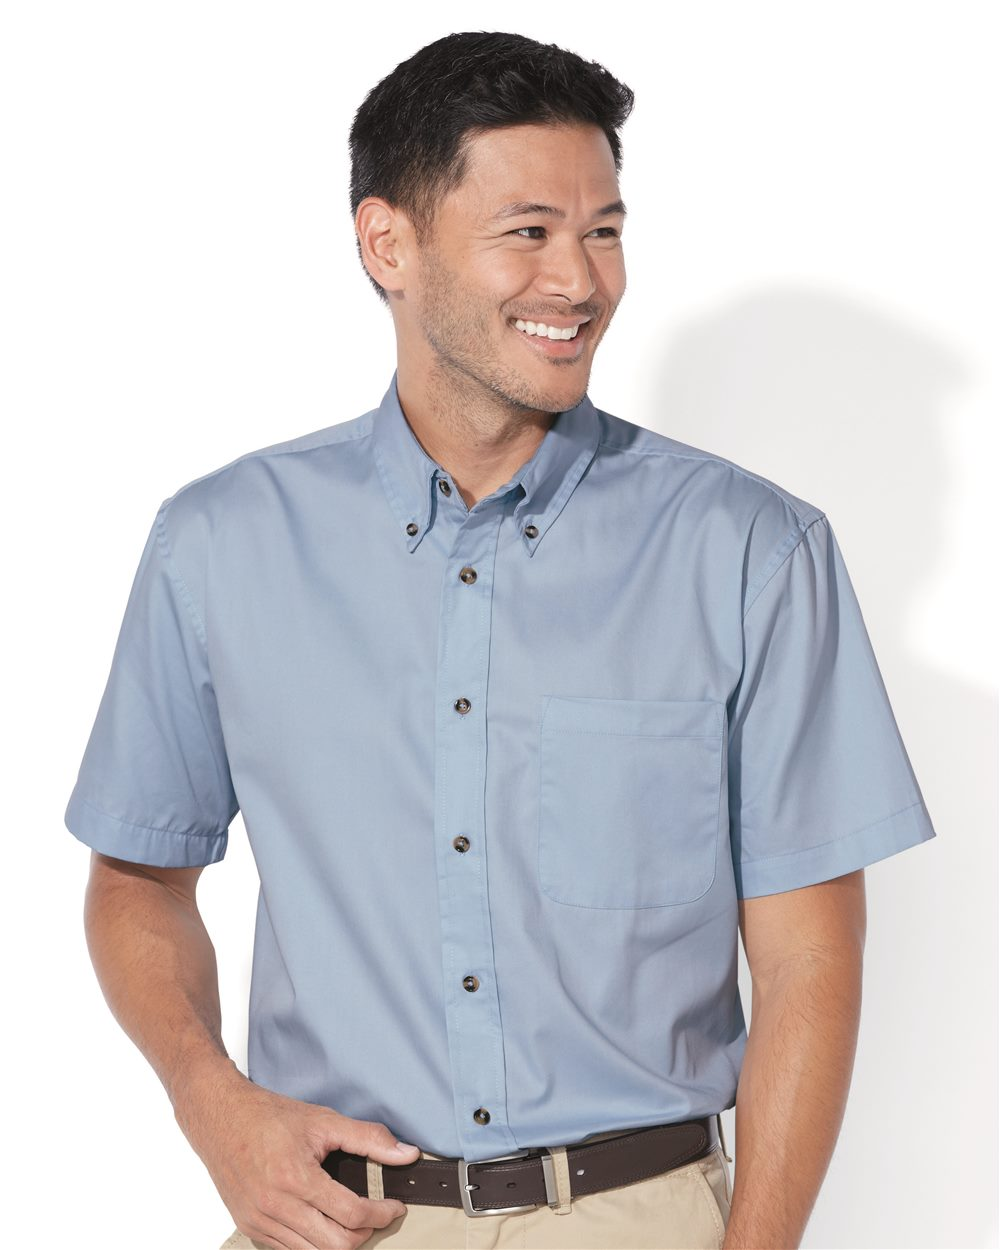 FeatherLite 0281 Short Sleeve Stain Resistant Twill Shirt